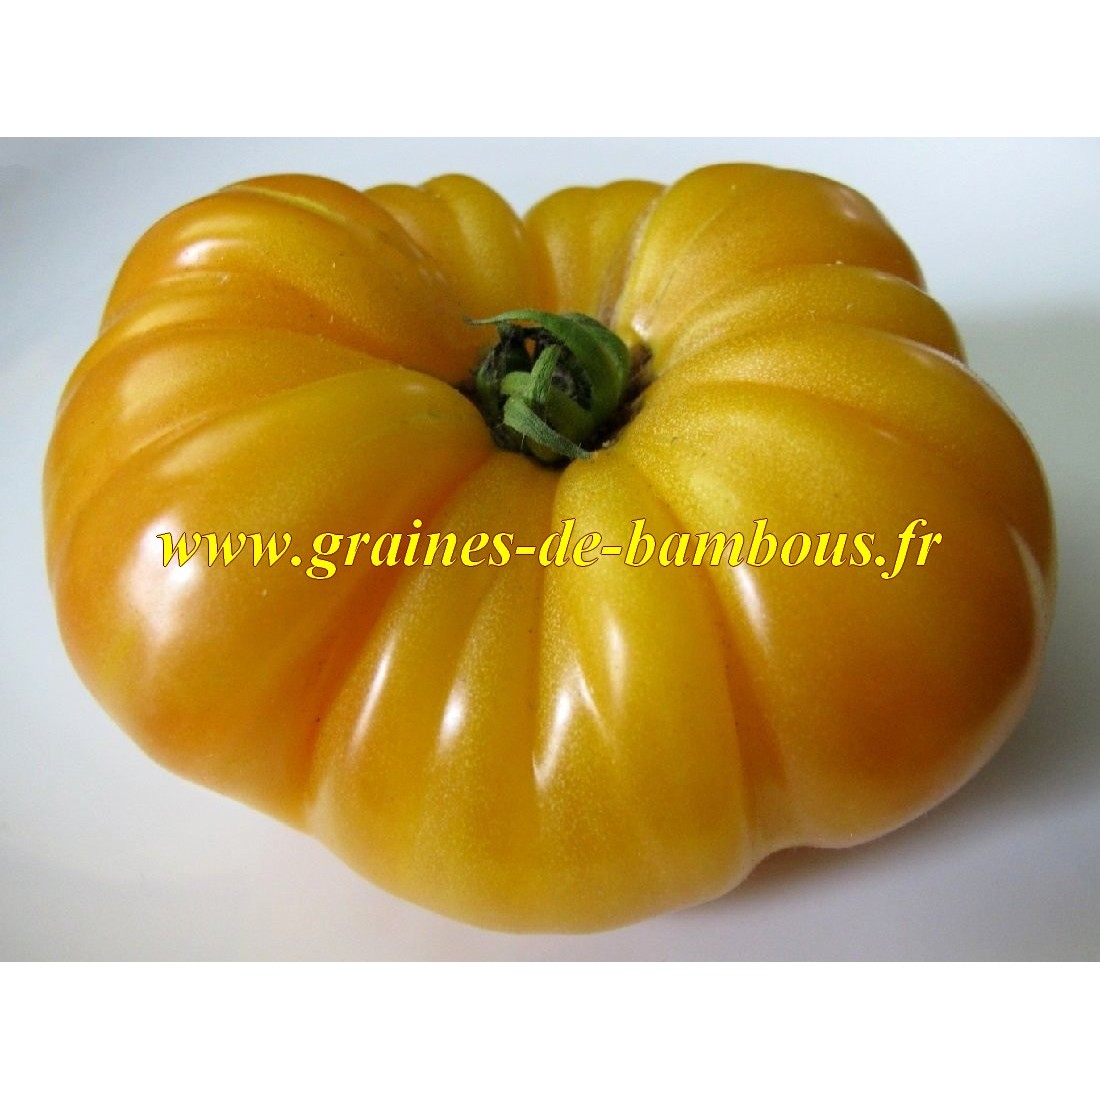 Ananas tomate graines